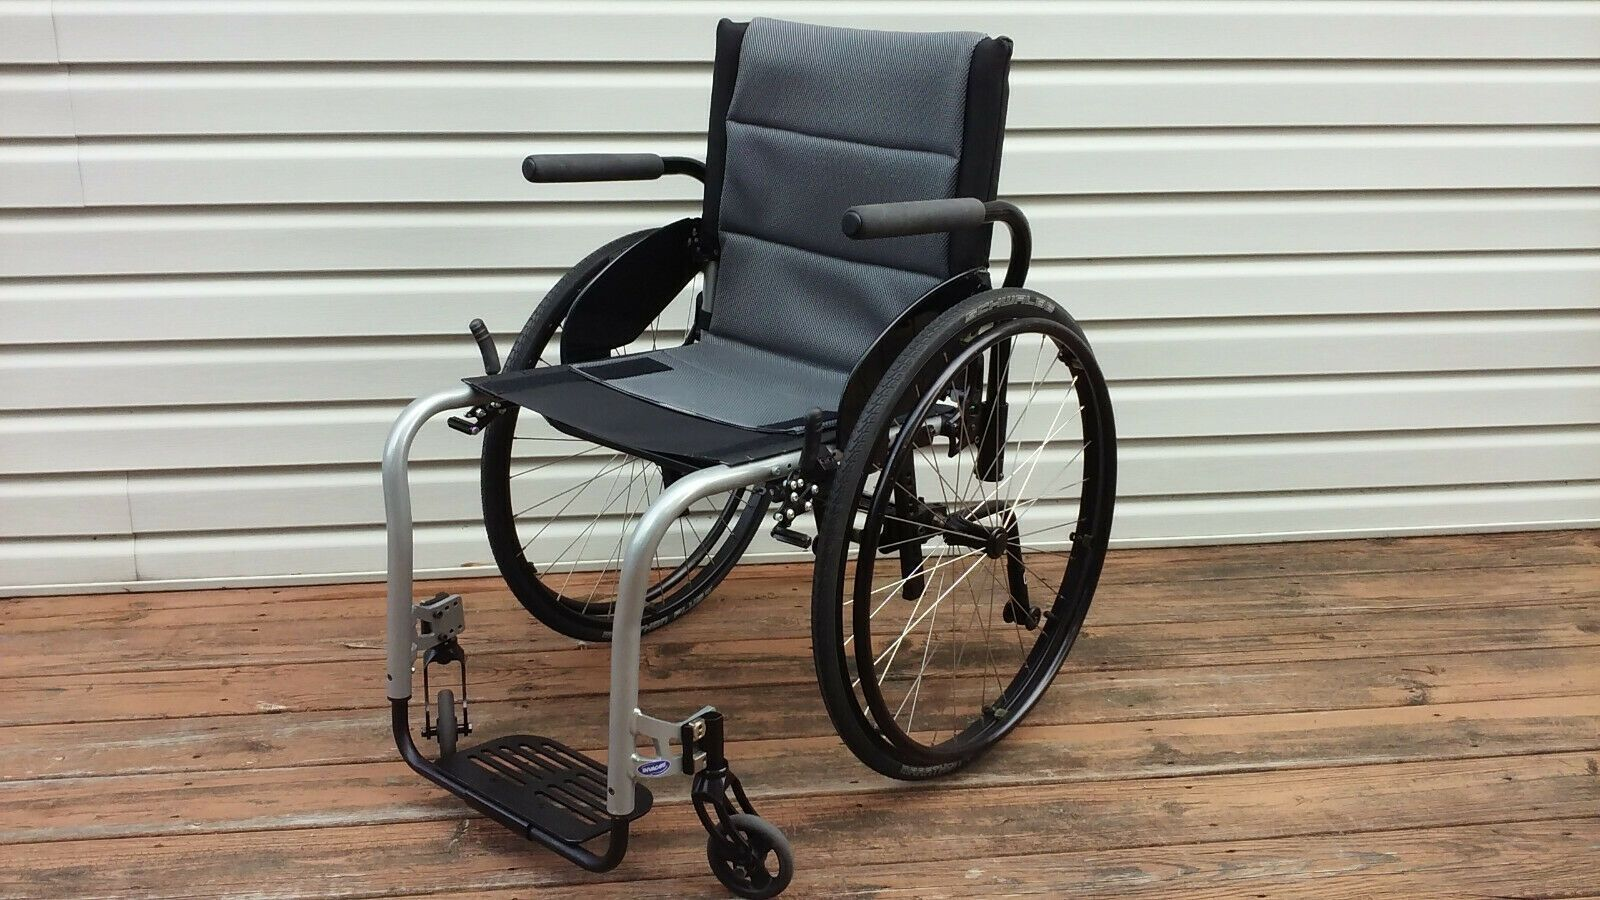 Pin on Wheelchairs